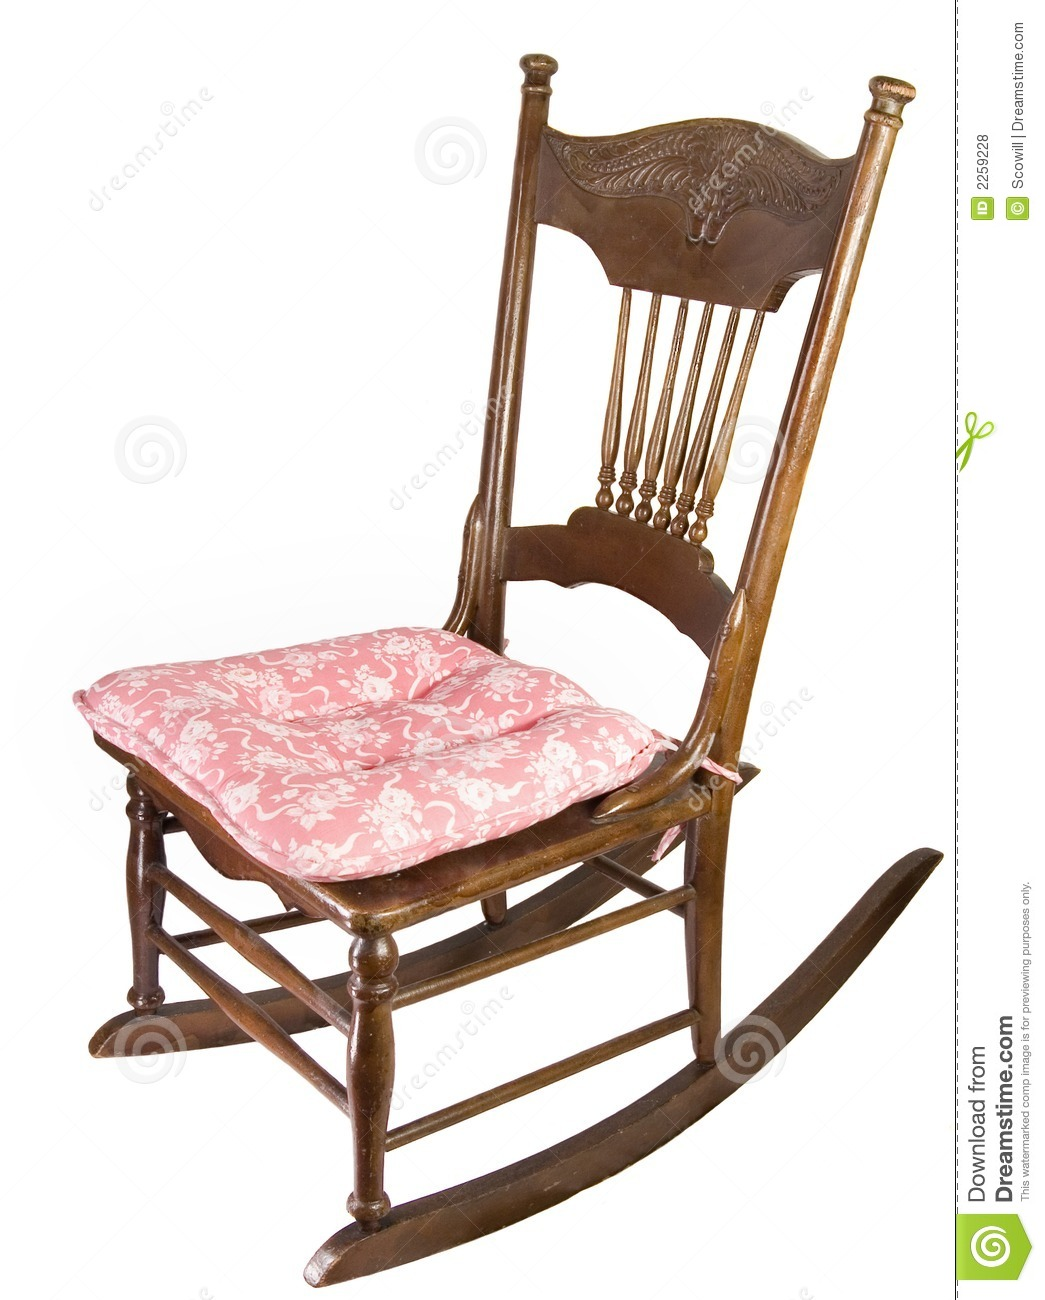 Armless Rocking Chair stock photo Image of armless relax